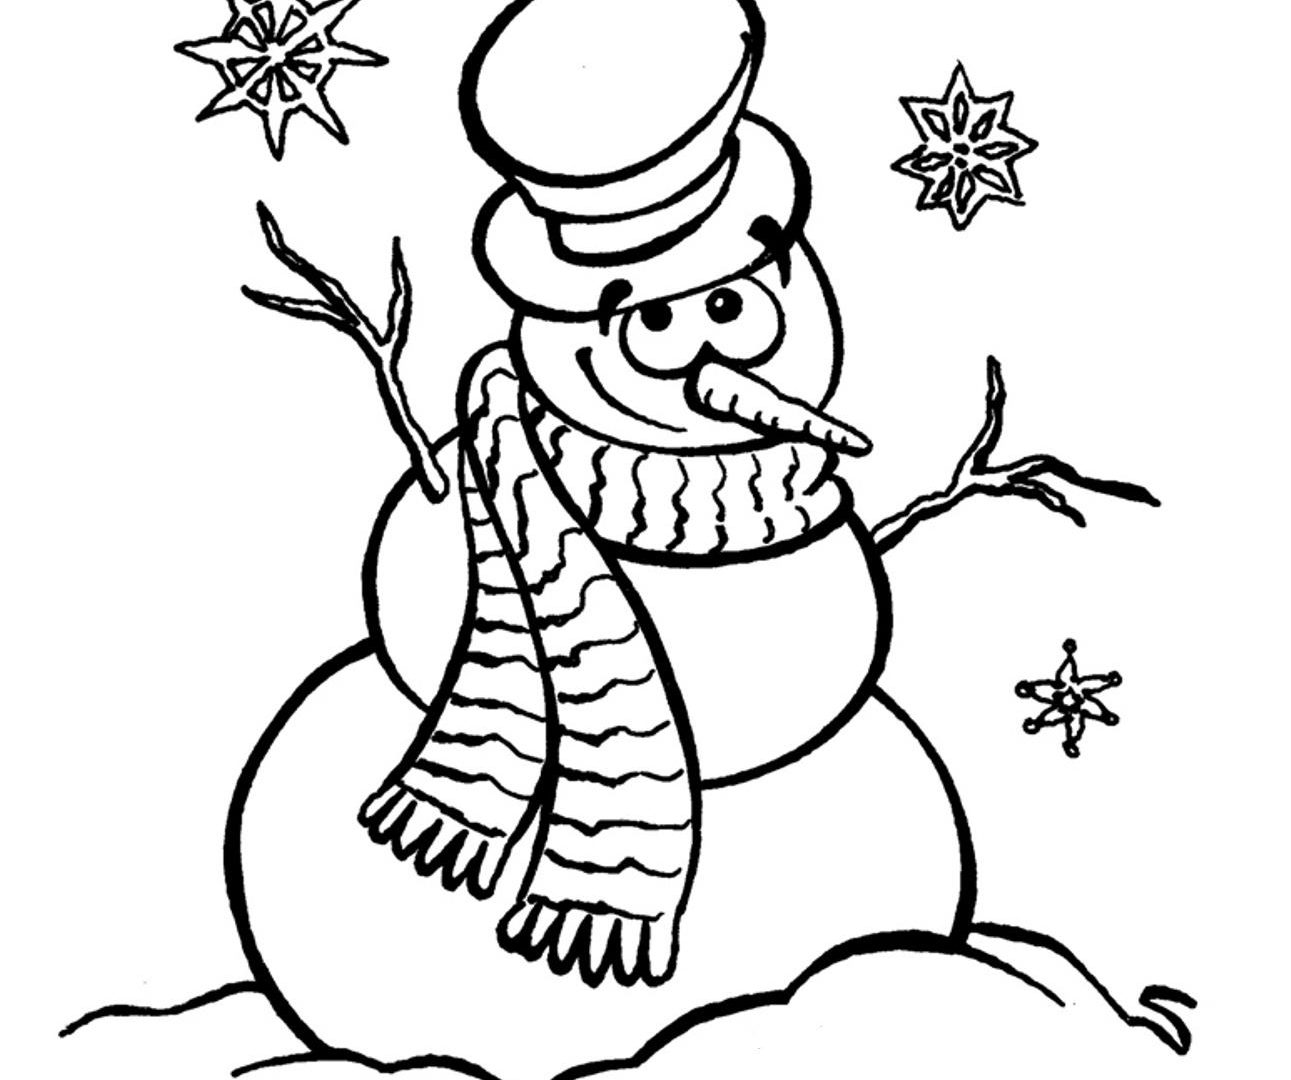 Snowman Coloring Pages For Kindergarten At Getdrawings